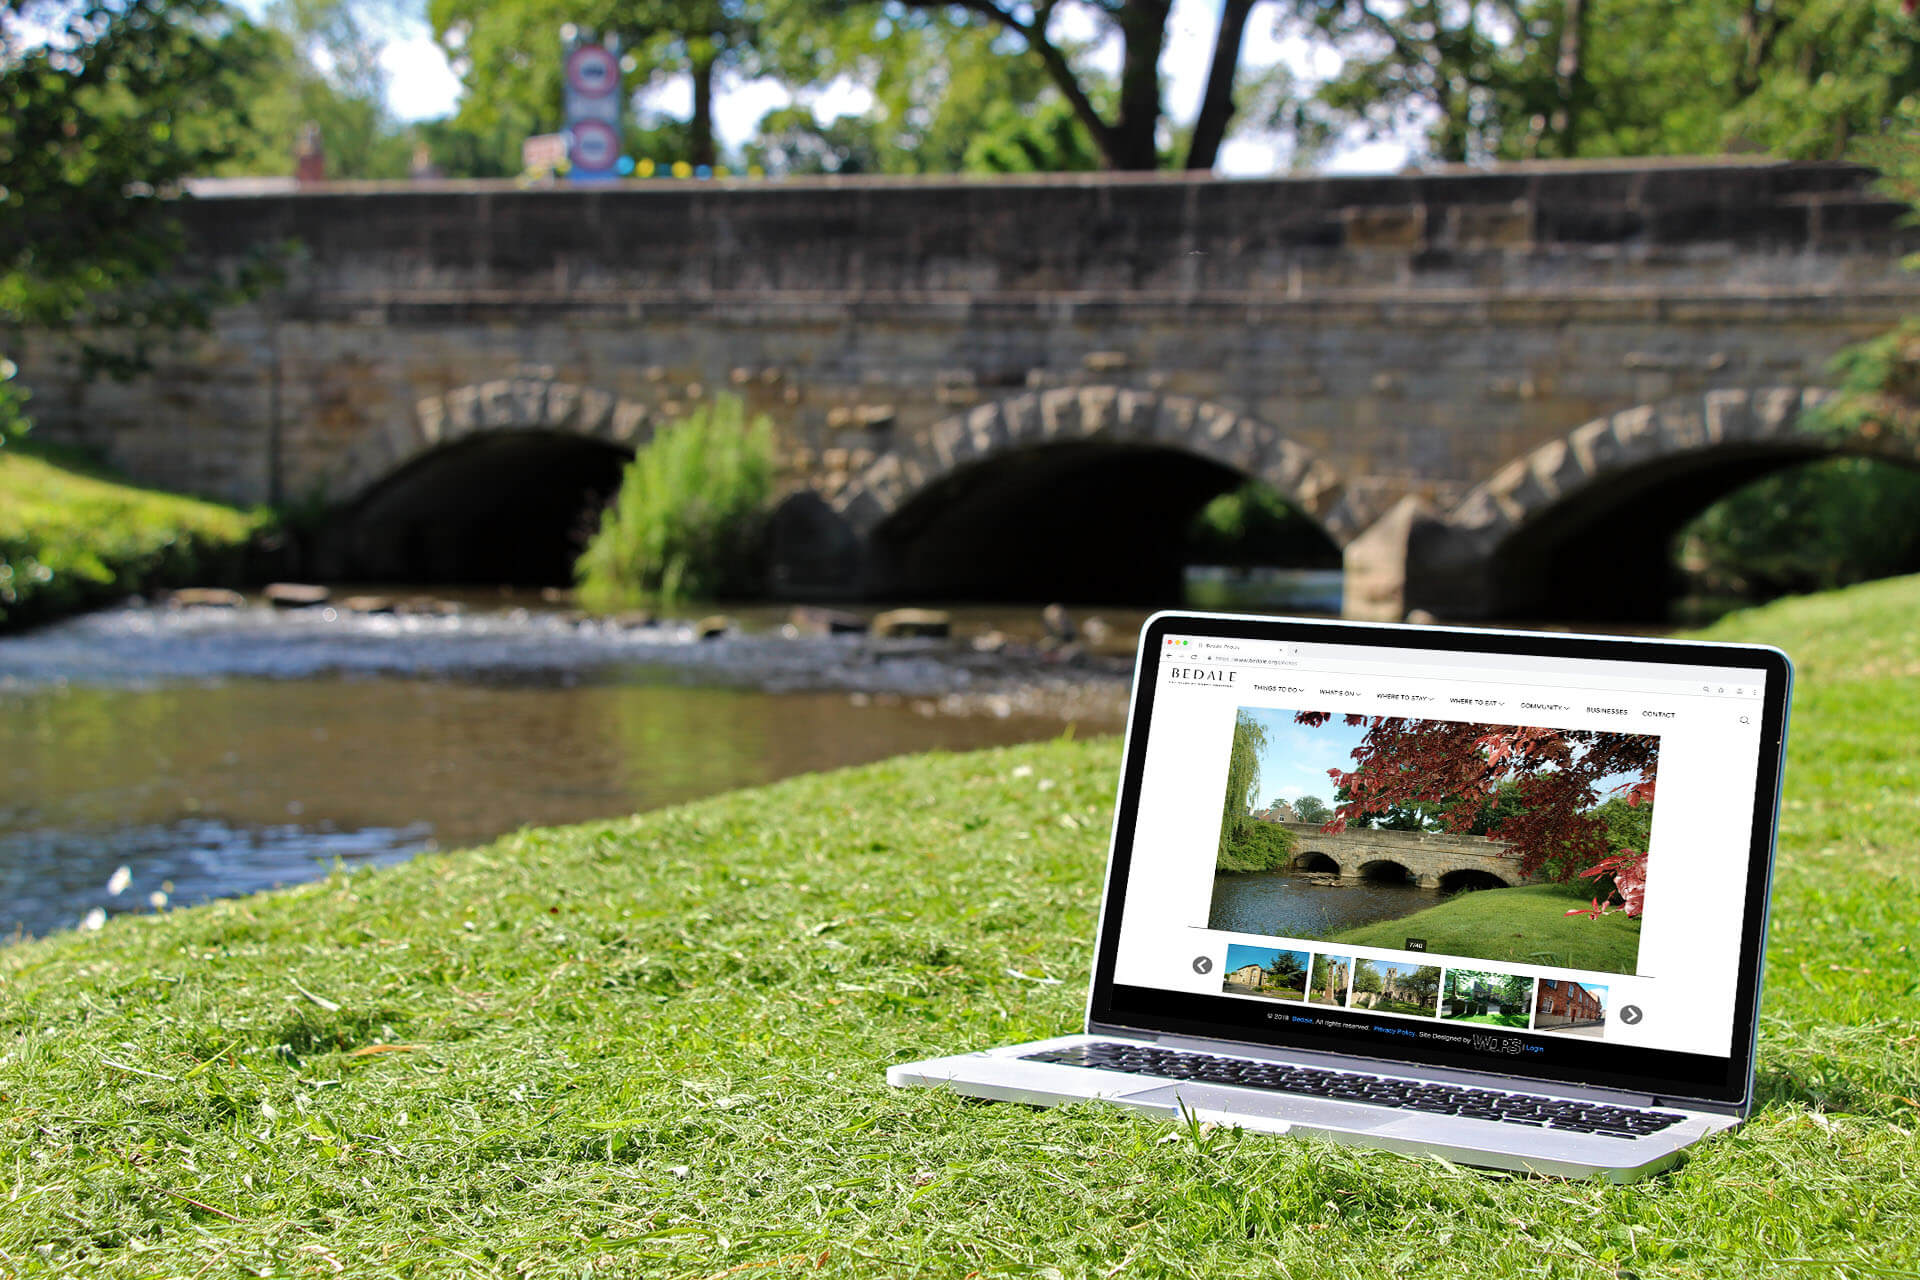 Macbook overlooking stone bridge displaying the image of the location it is at